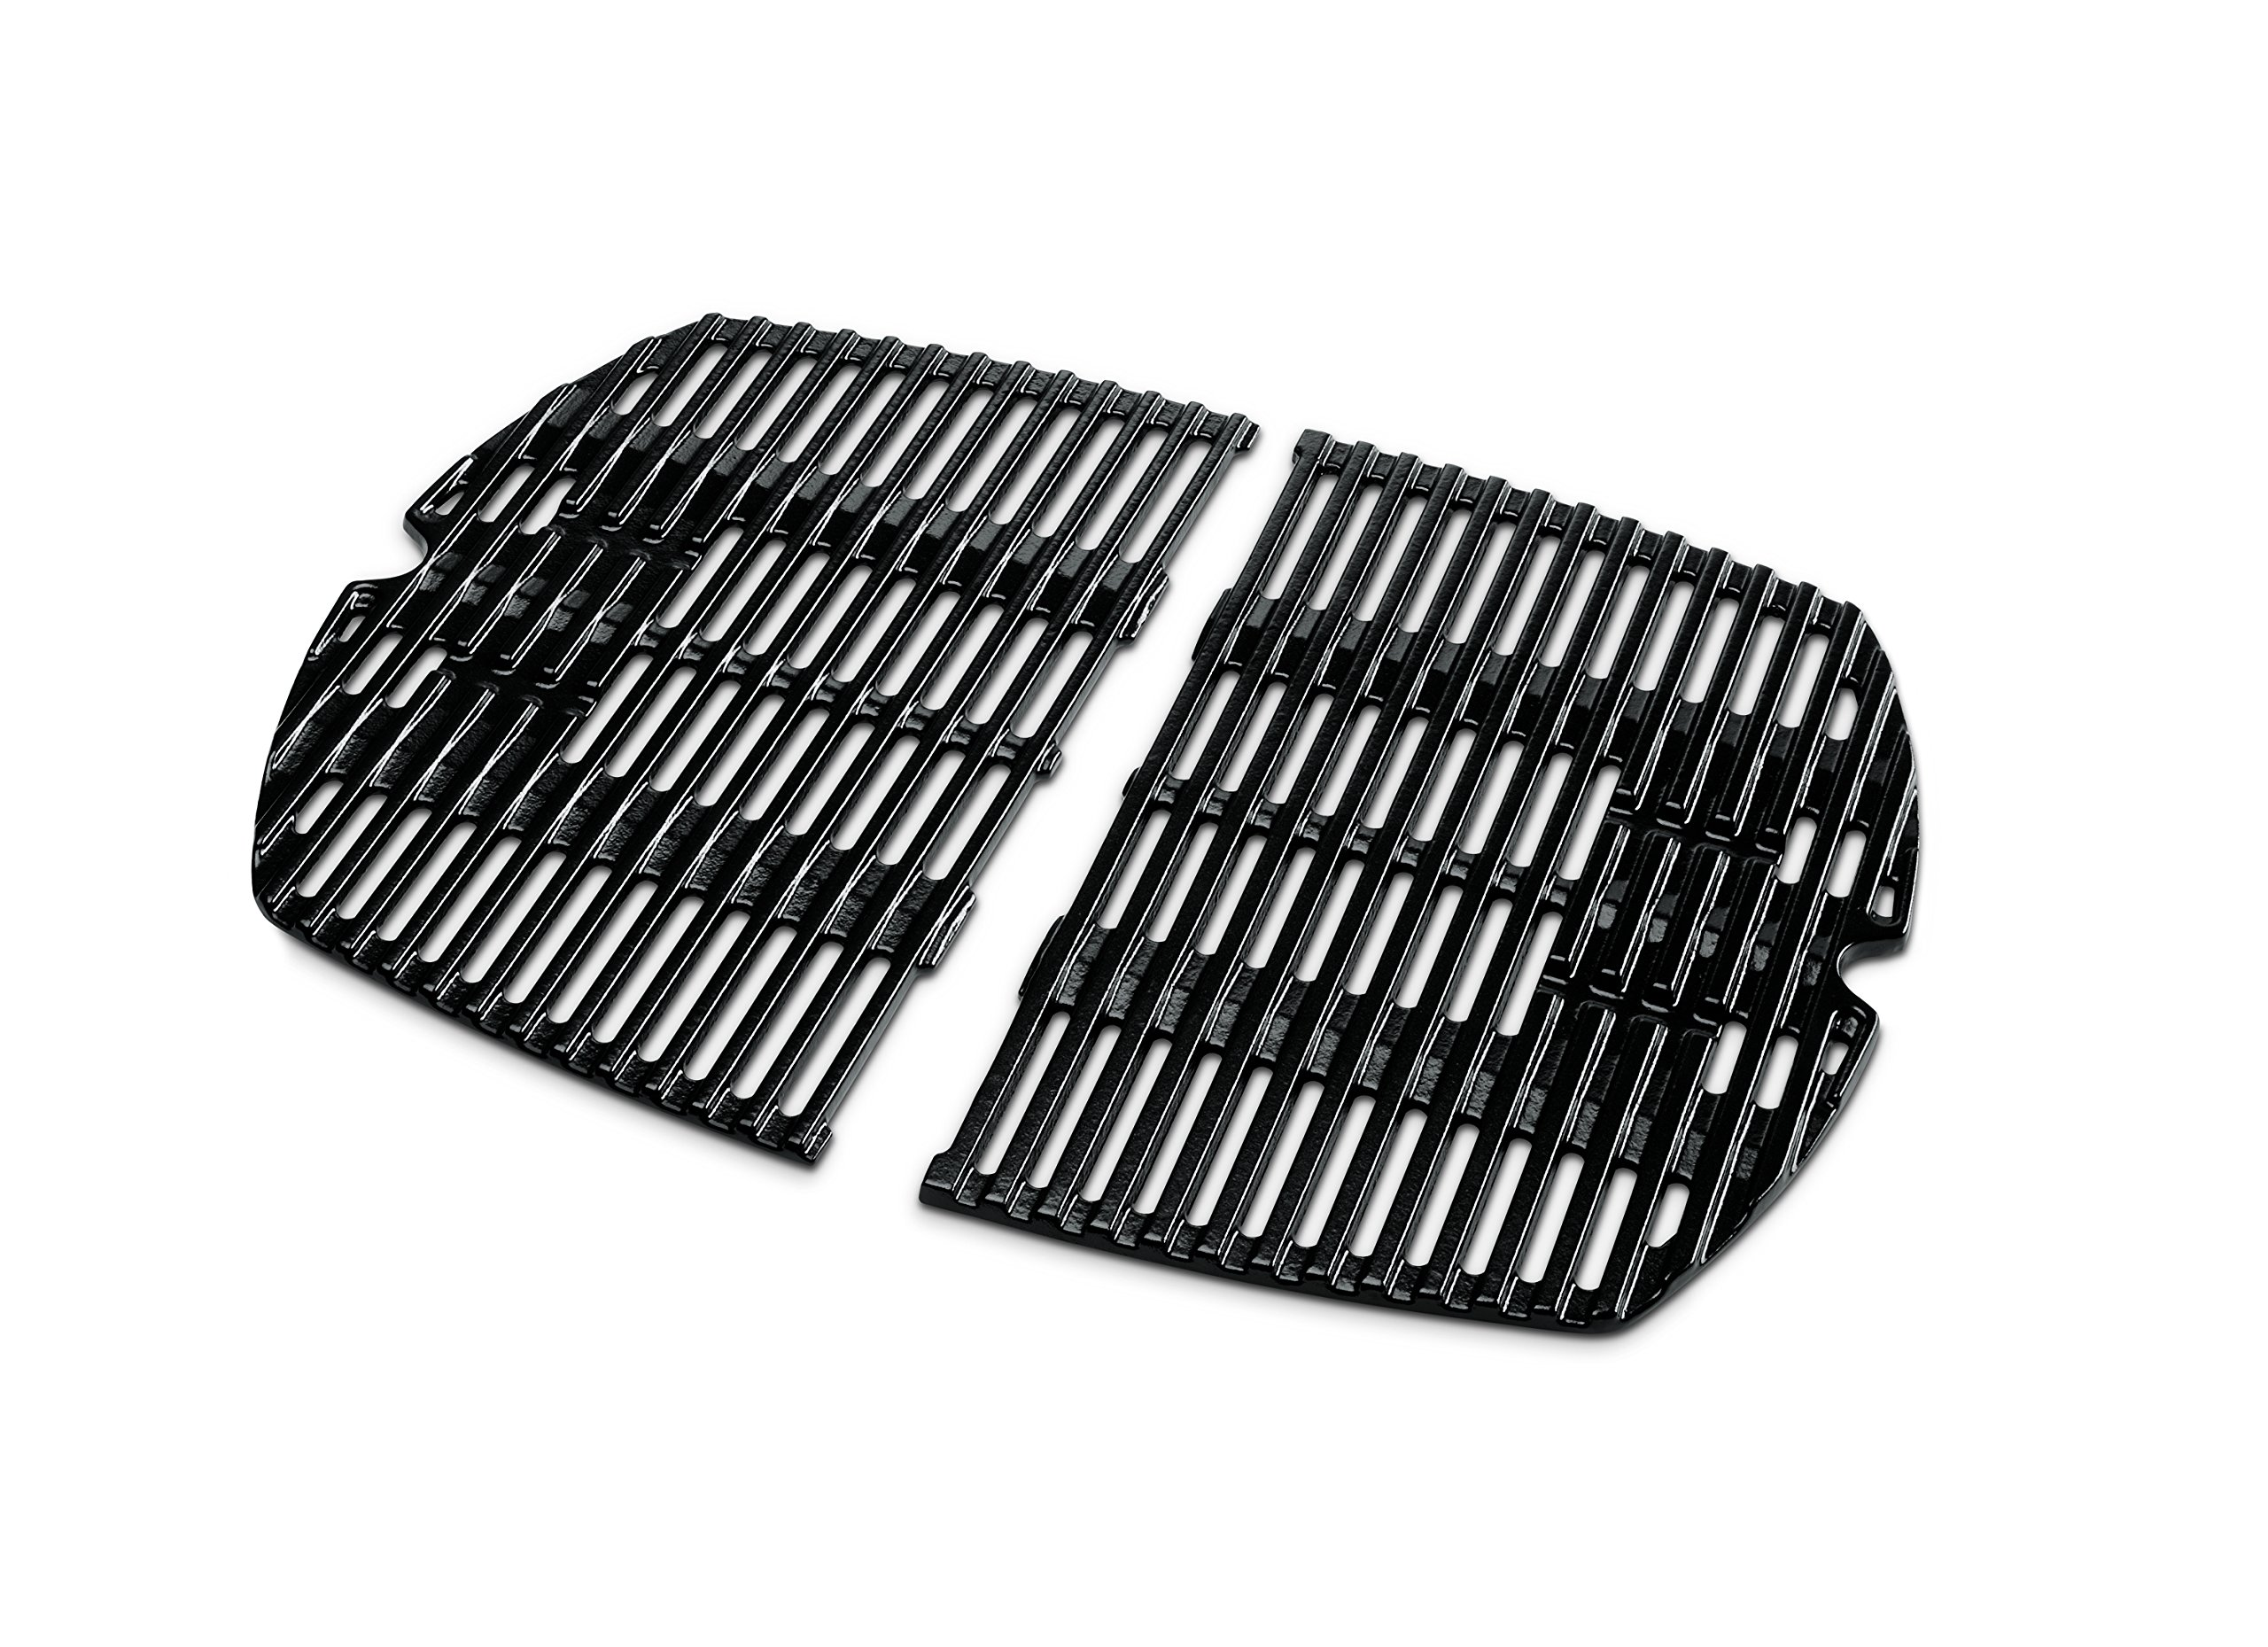 Weber 7645 Porcelain-Enameled Cast Iron Cooking Grate by Weber